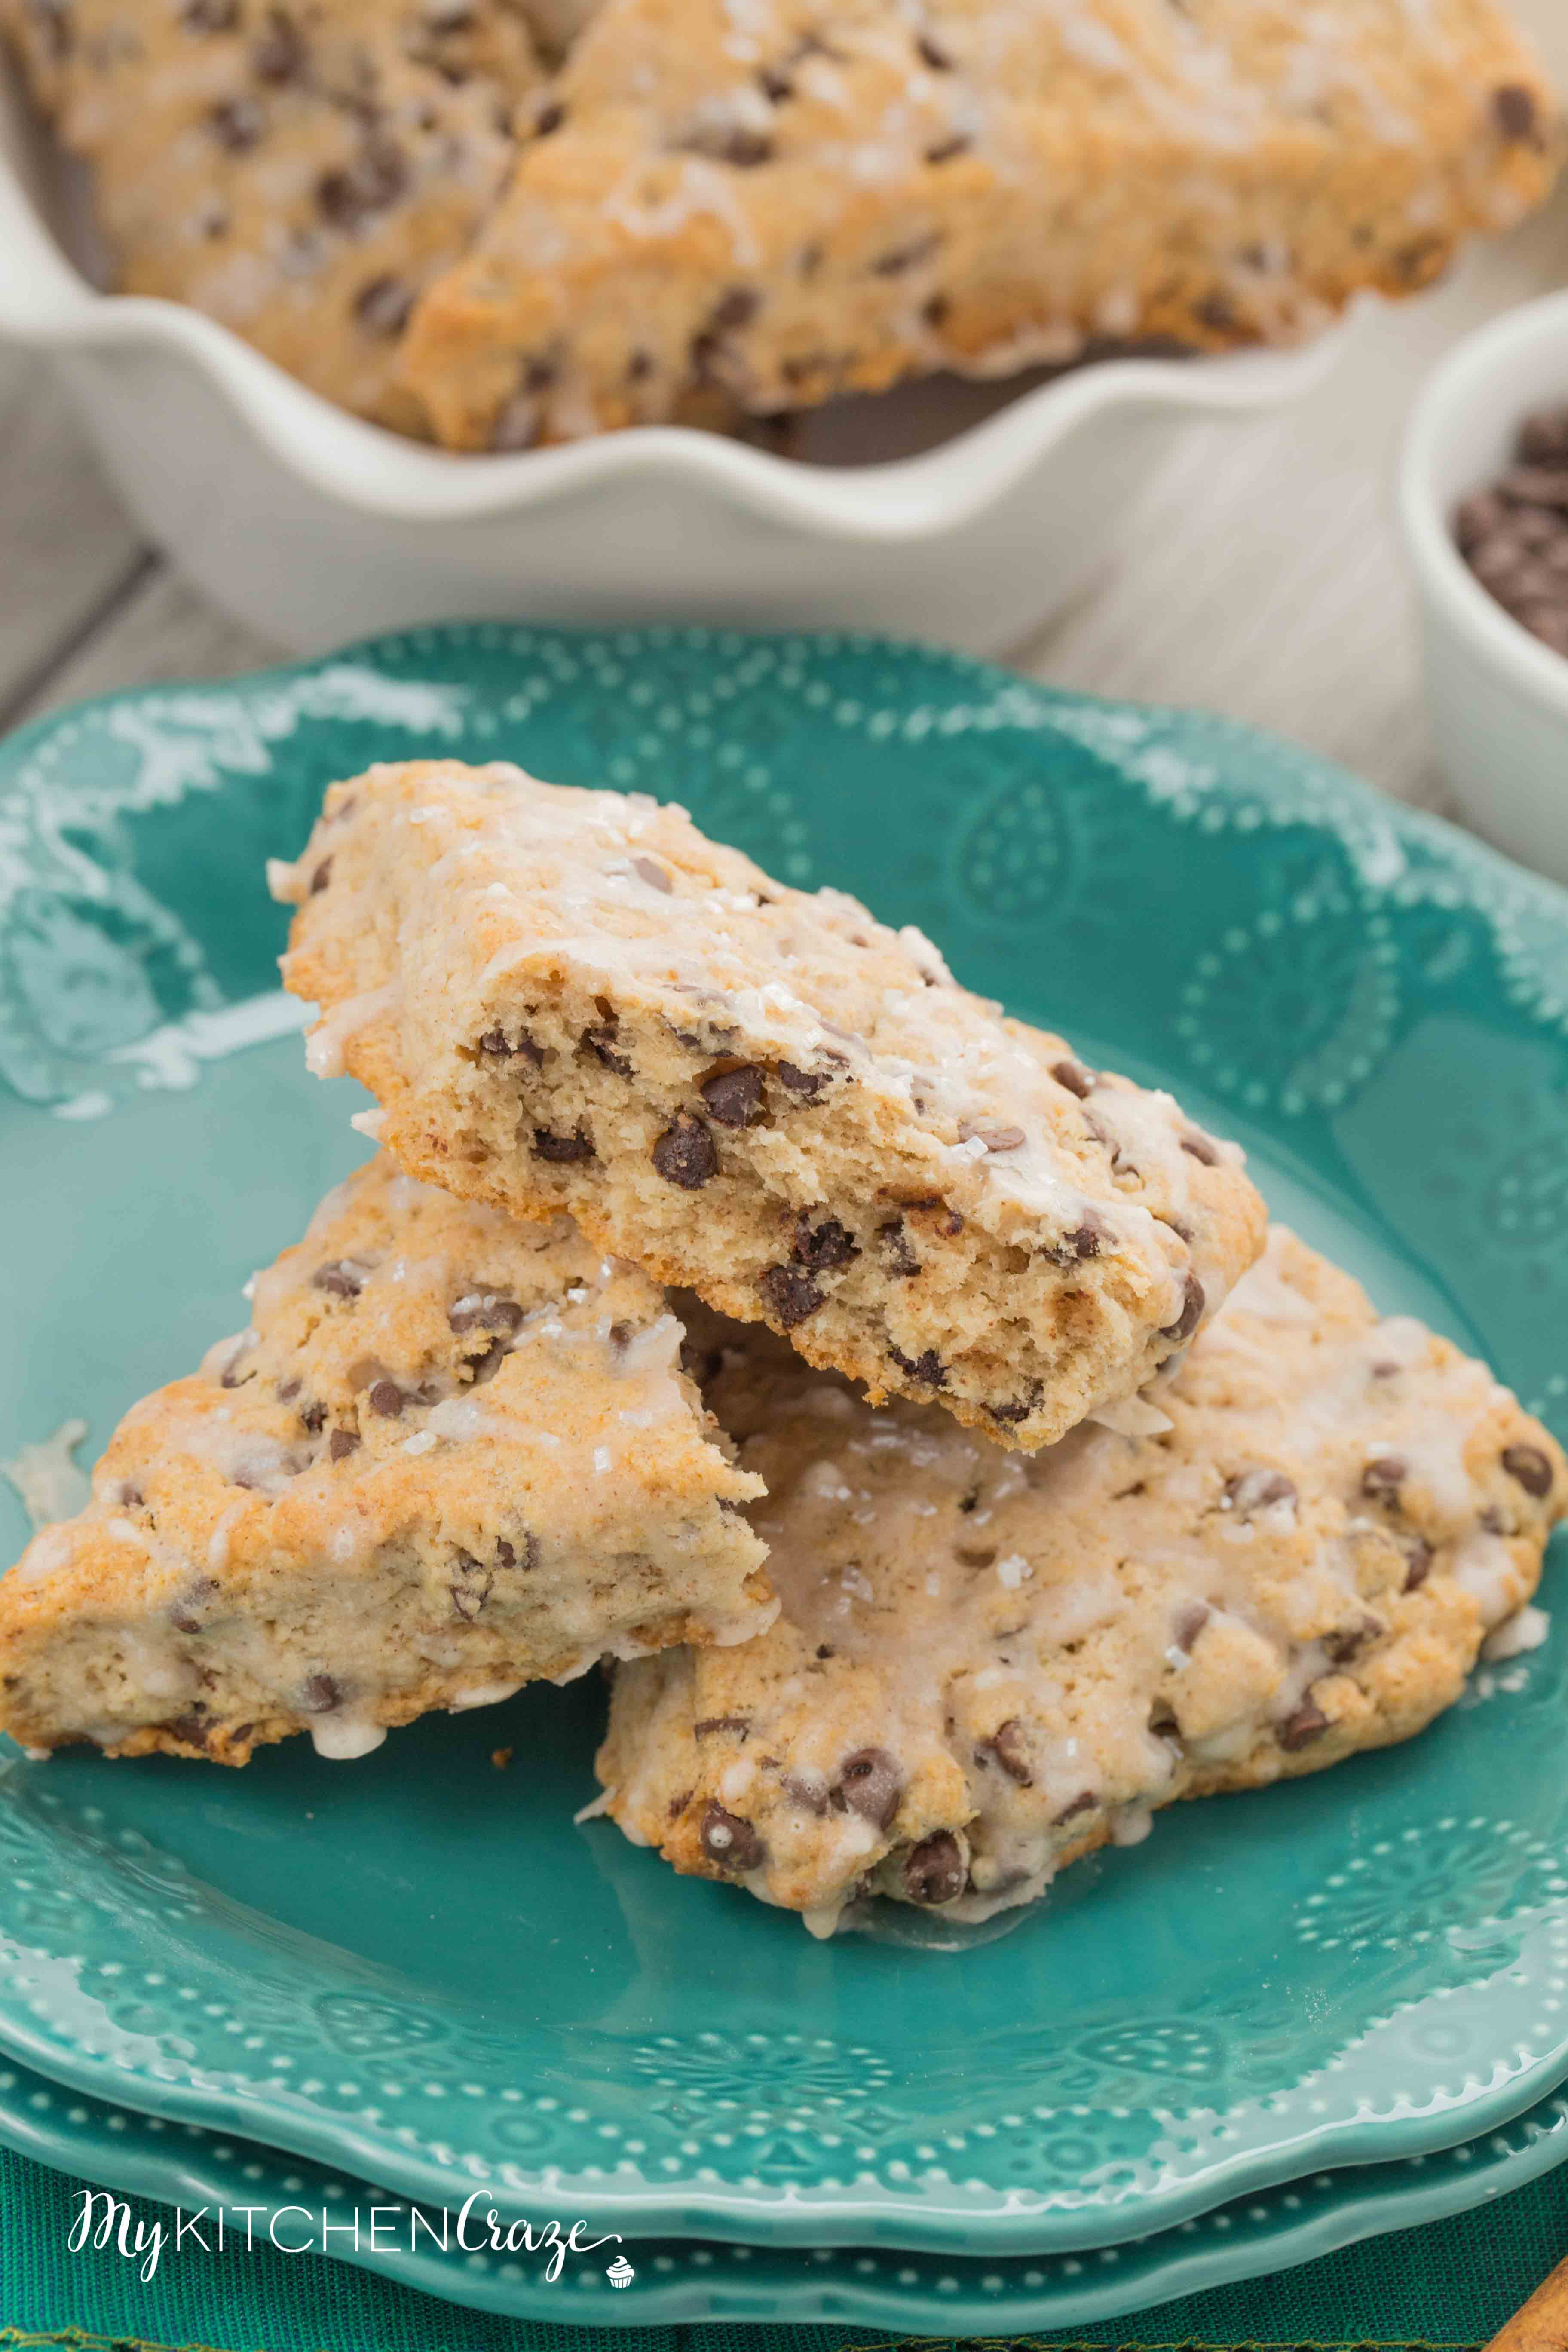 Cinnamon Chocolate Chip Scones ~ mykitchencraze.com ~ These scones are packed with chocolate chips and topped with a cinnamon glaze. These are the most delicious scones e-v-e-r! Moist, crumbly and irresistible. Give them a try.